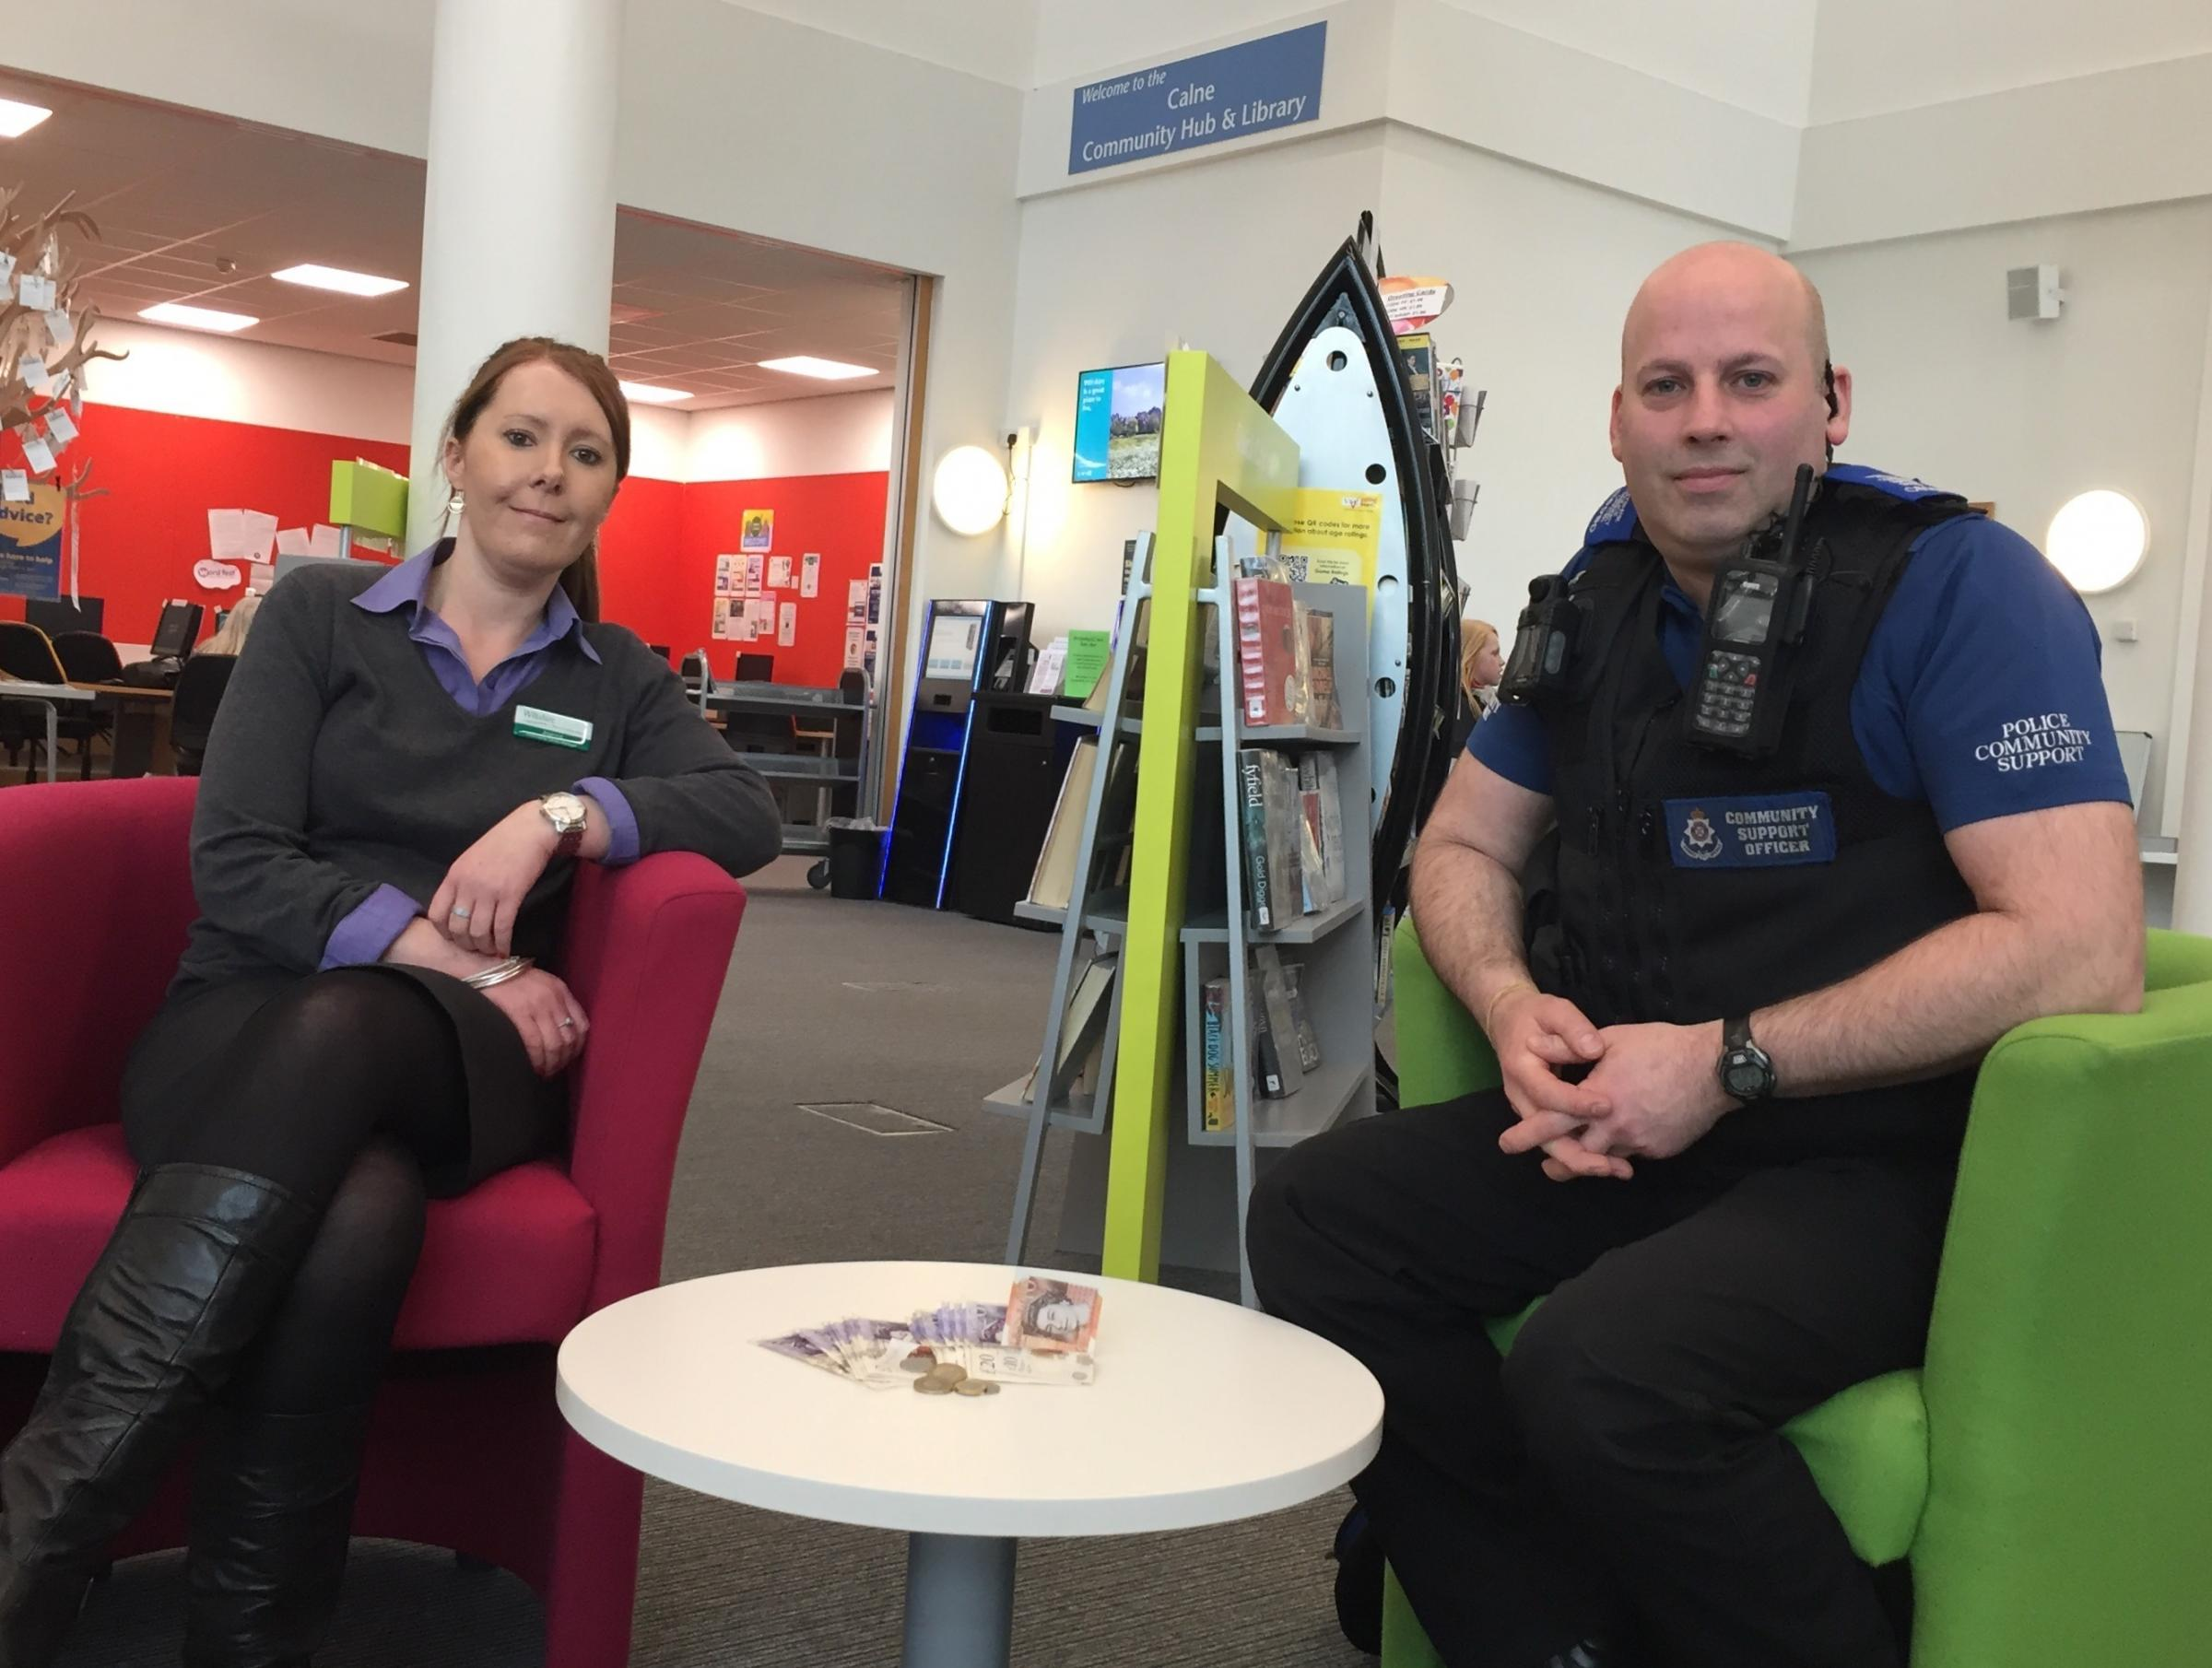 Community Library Manager for Calne Jo Smith and PCSO Mark Cook